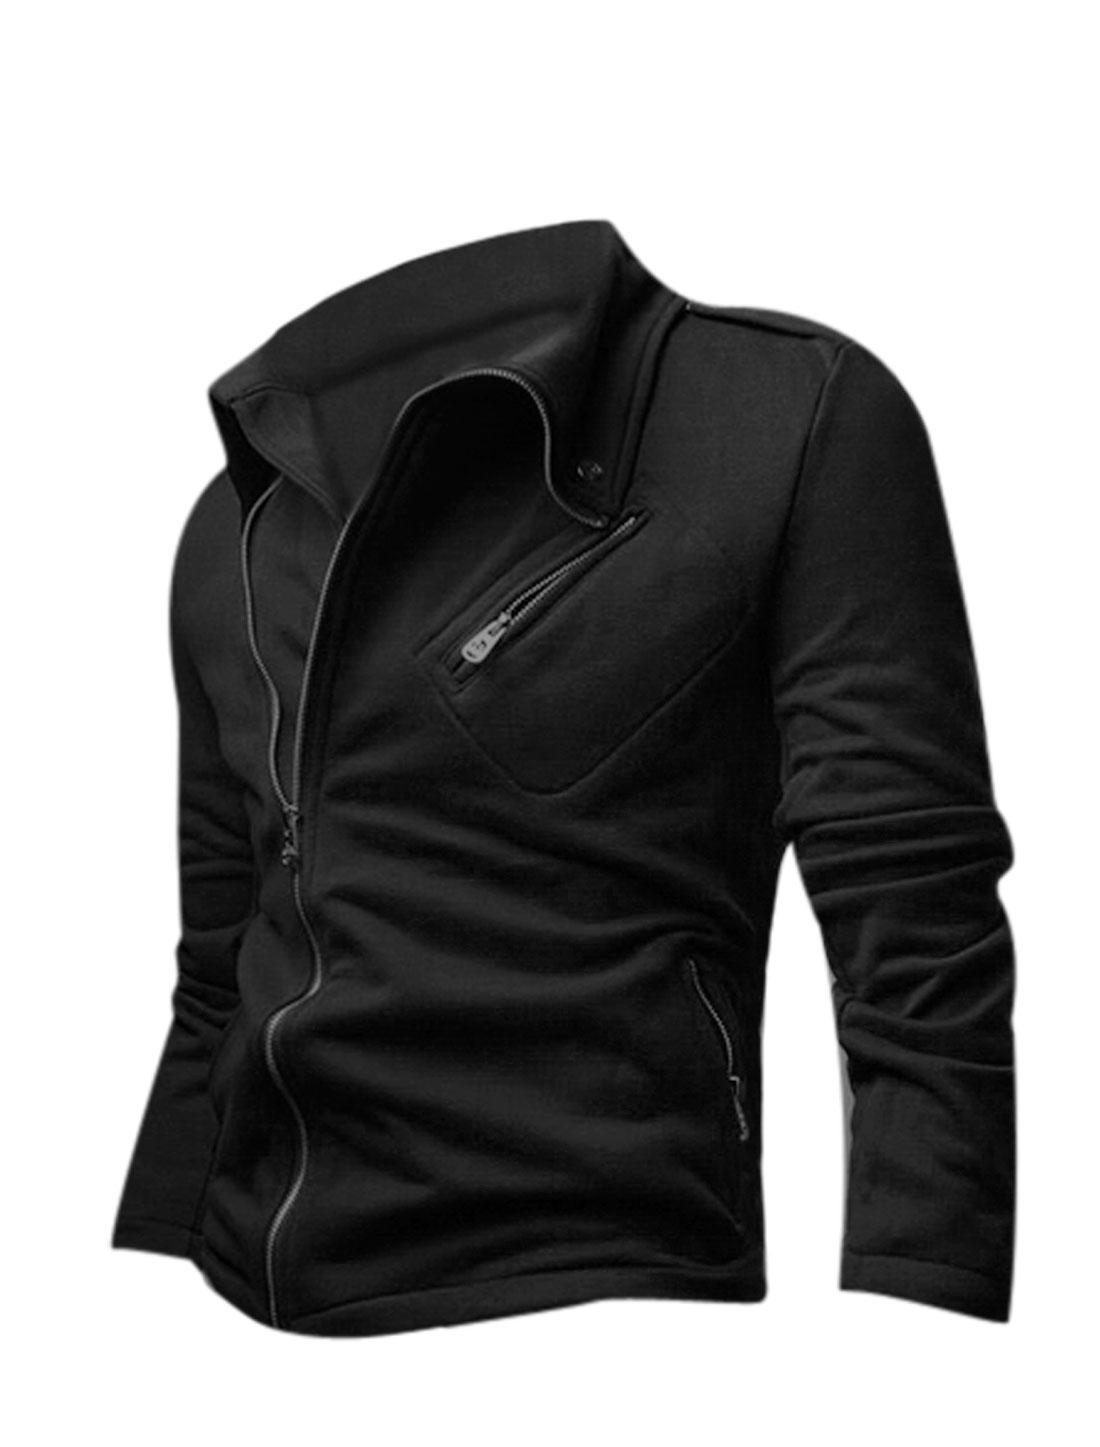 Men Turn Down Collar Long Sleeve Zip Up Casual Jacket Black M